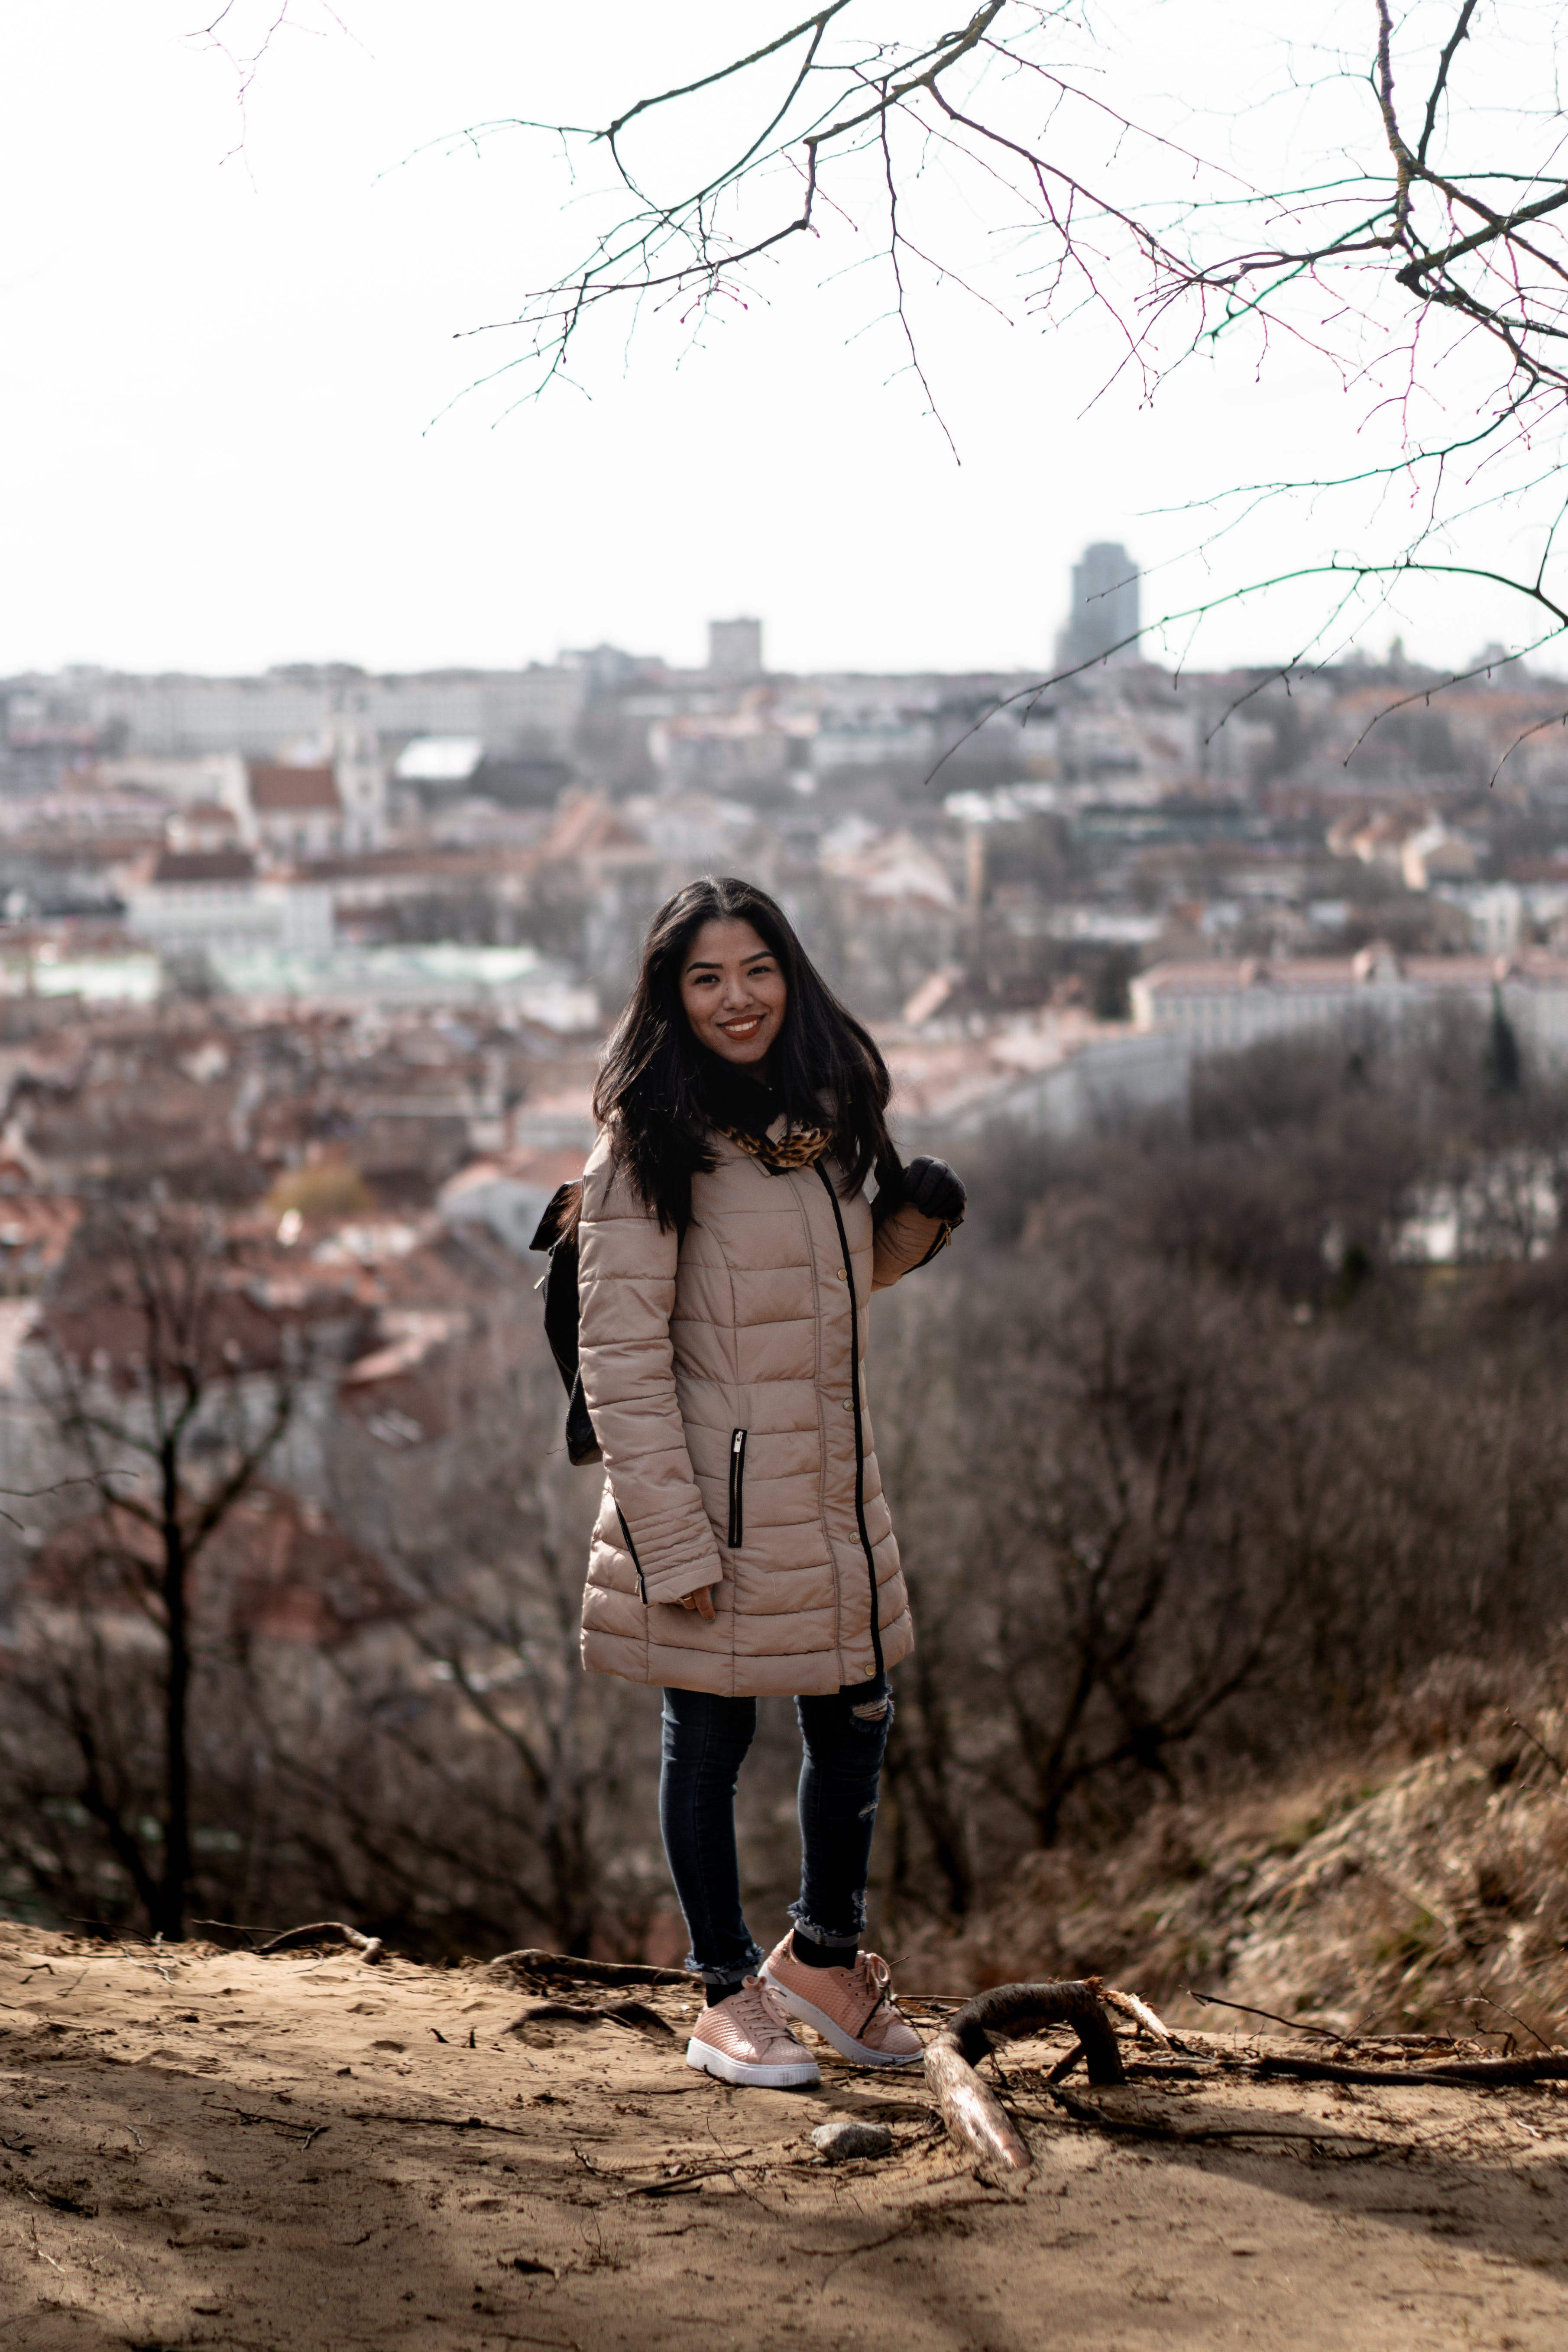 Free stock photo of city, city scape, girl, panorma